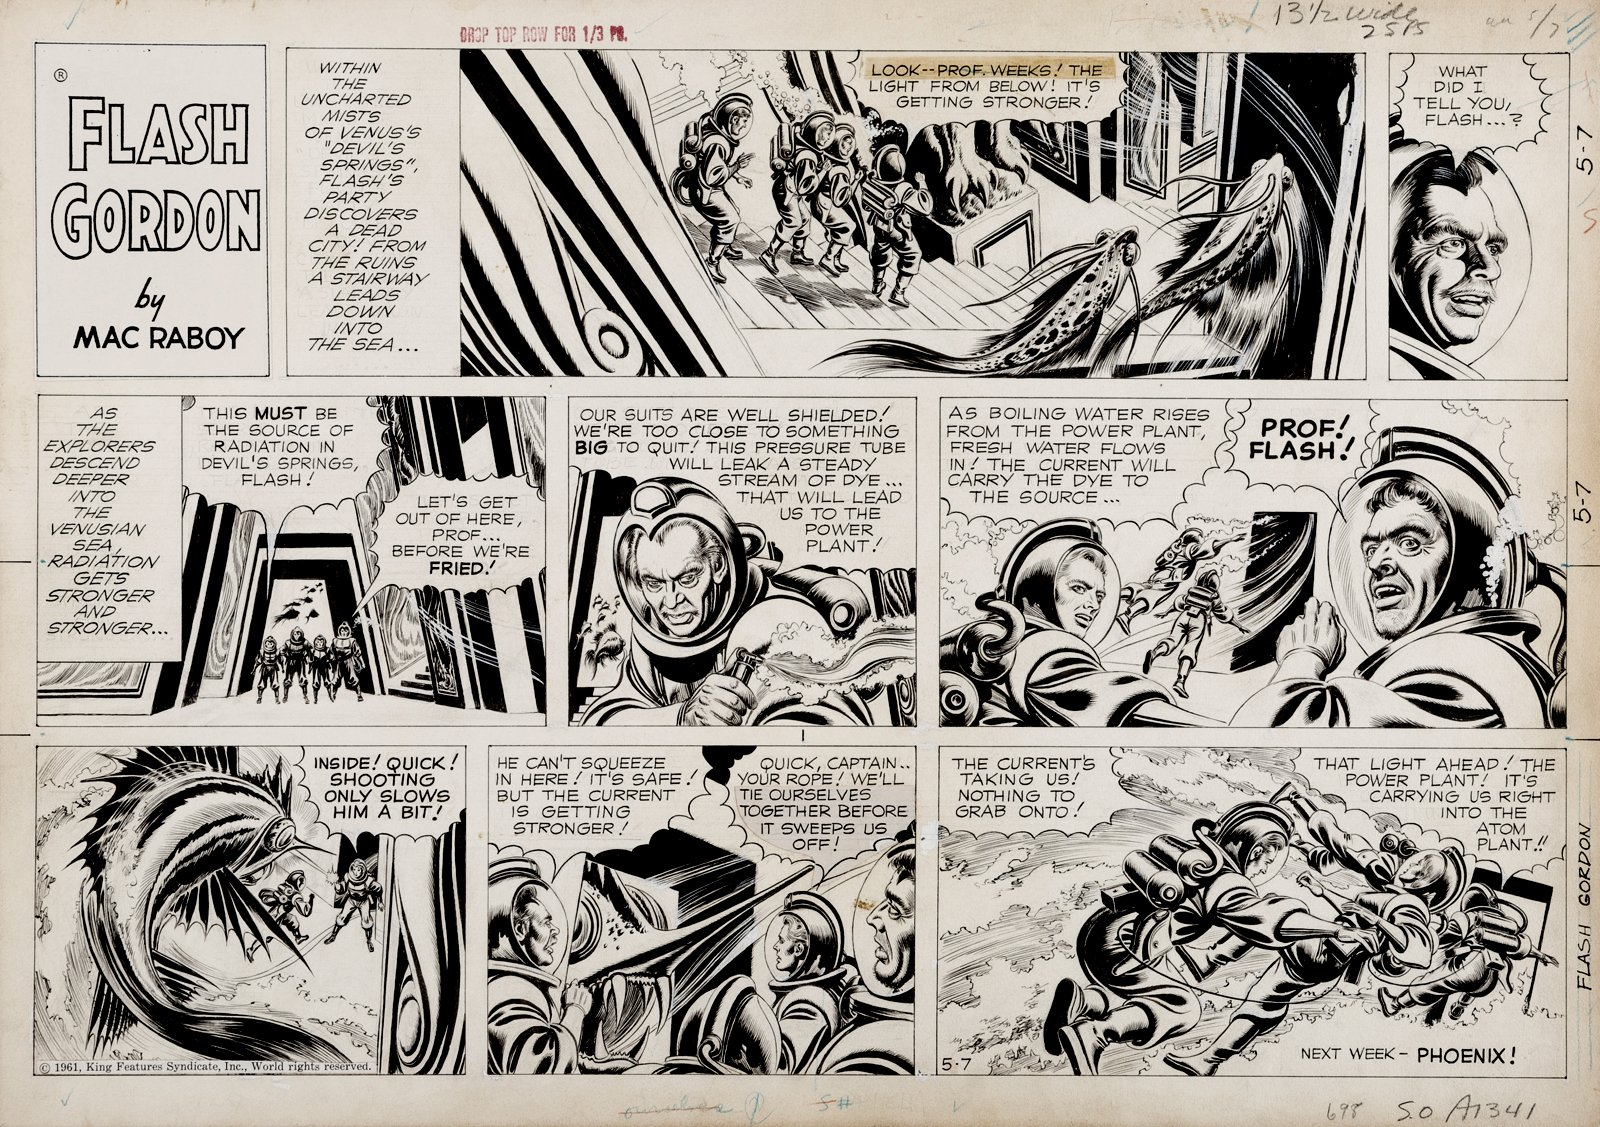 Flash Gordon Sunday Strip (Phenomenal Space Suit Monster Battle, Flash In 6 Biggest Panels!) 5-7-1961